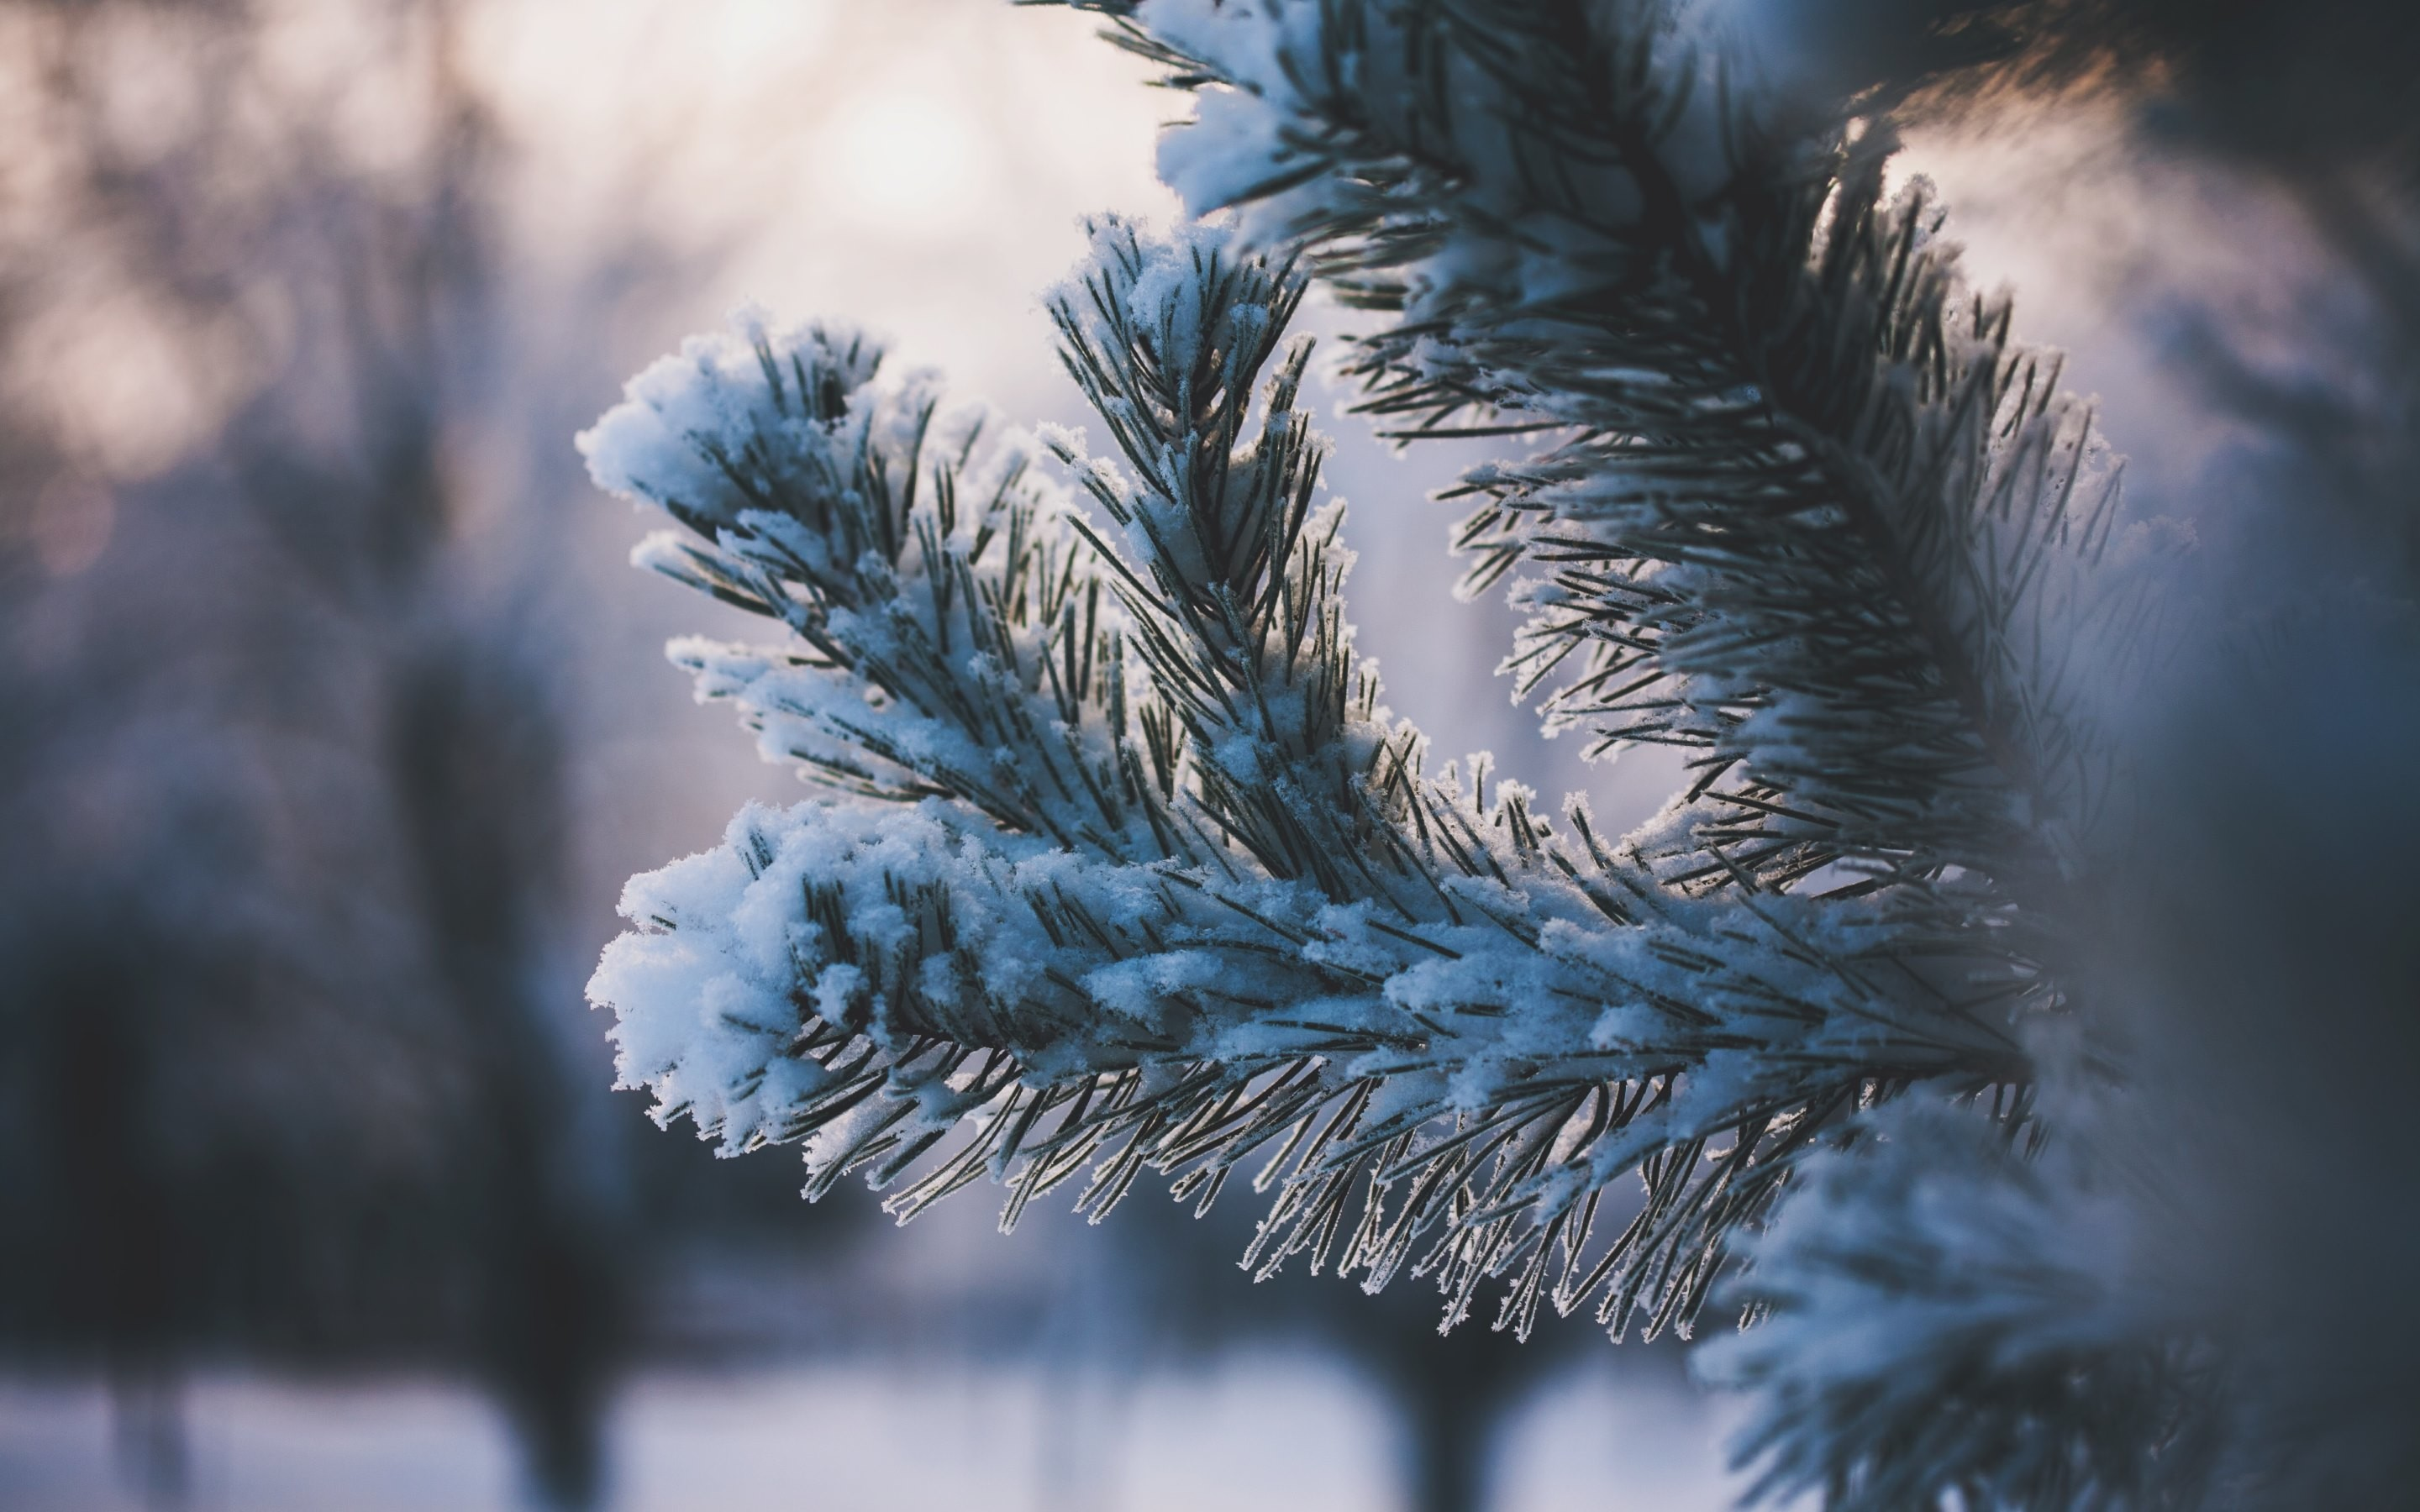 4K HD Wallpaper: Pine Needles covered with Snow · Pictures from Winter by  Maria